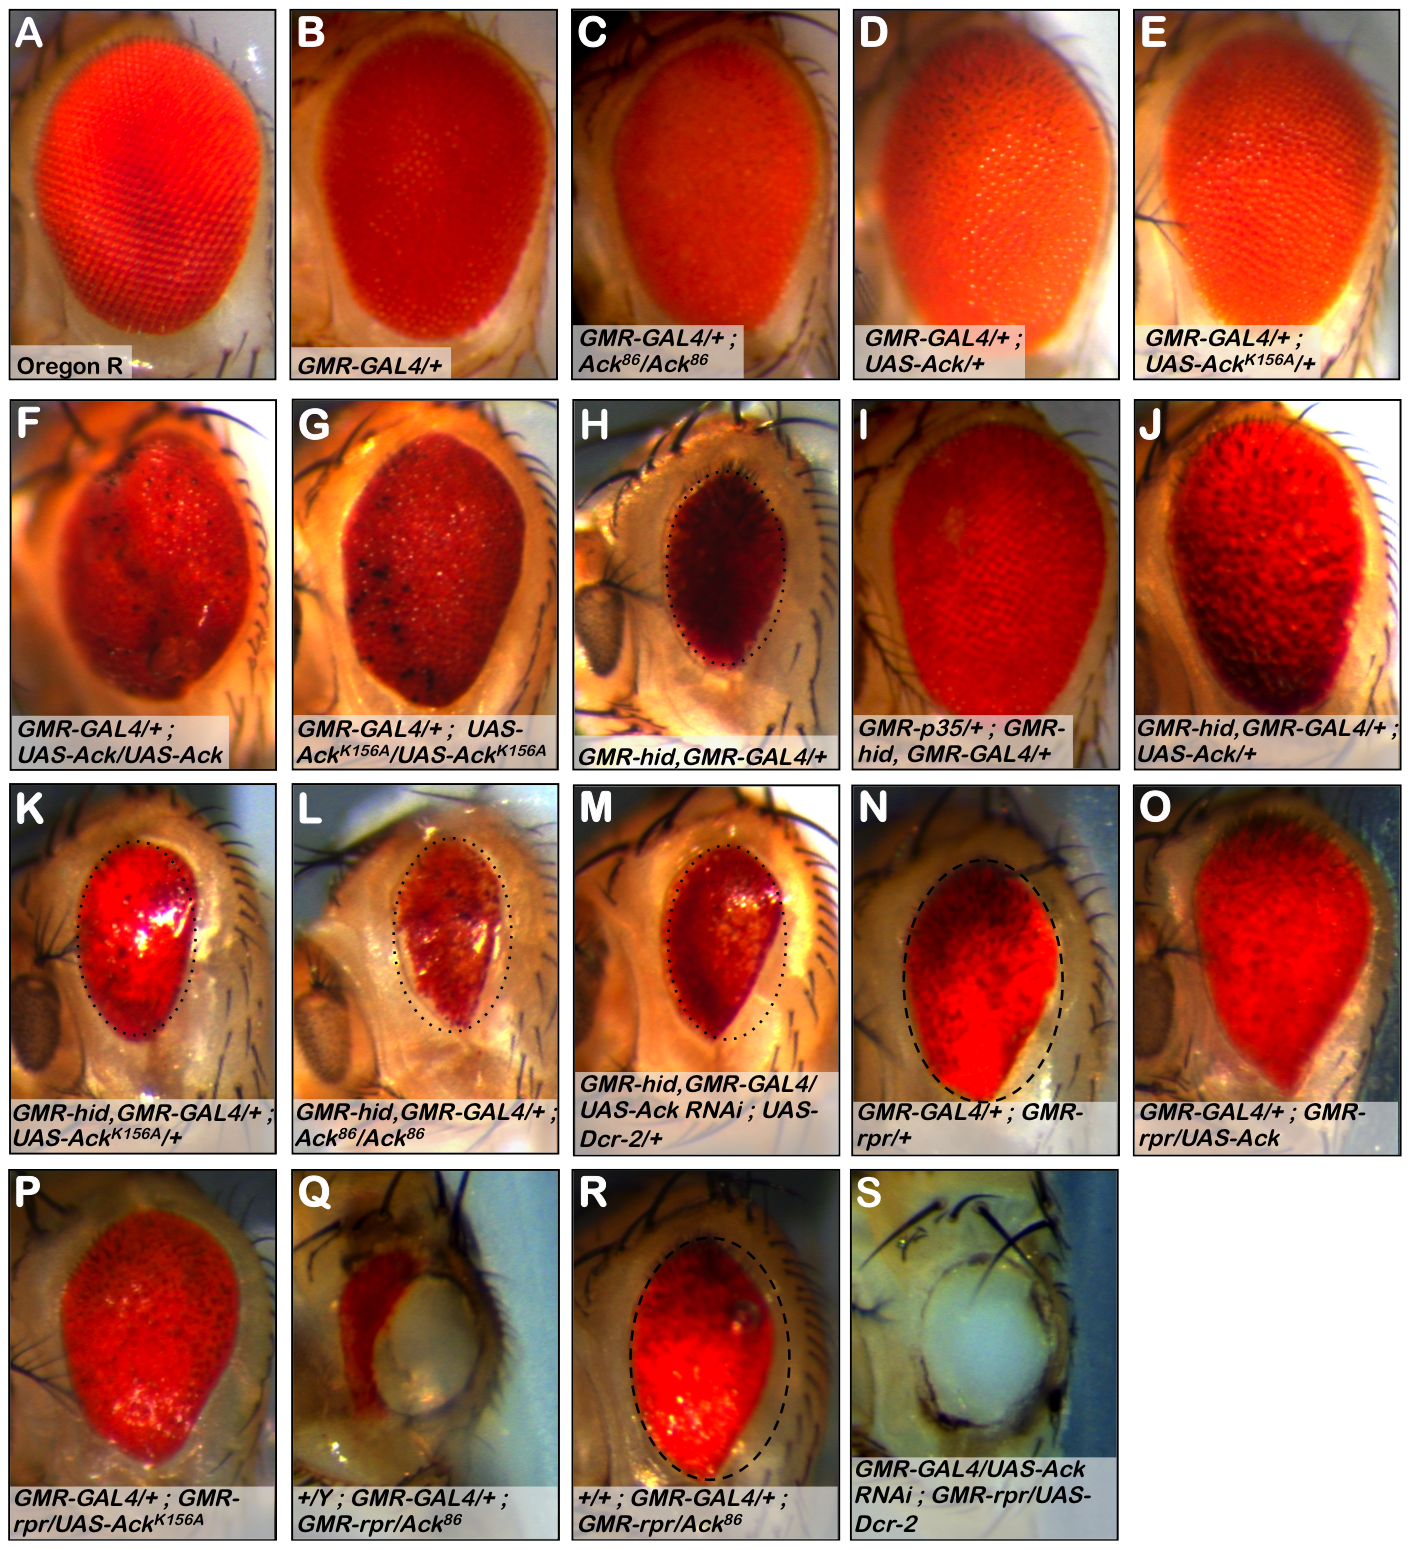 Ack suppresses small eye phenotypes induced by hid and rpr.